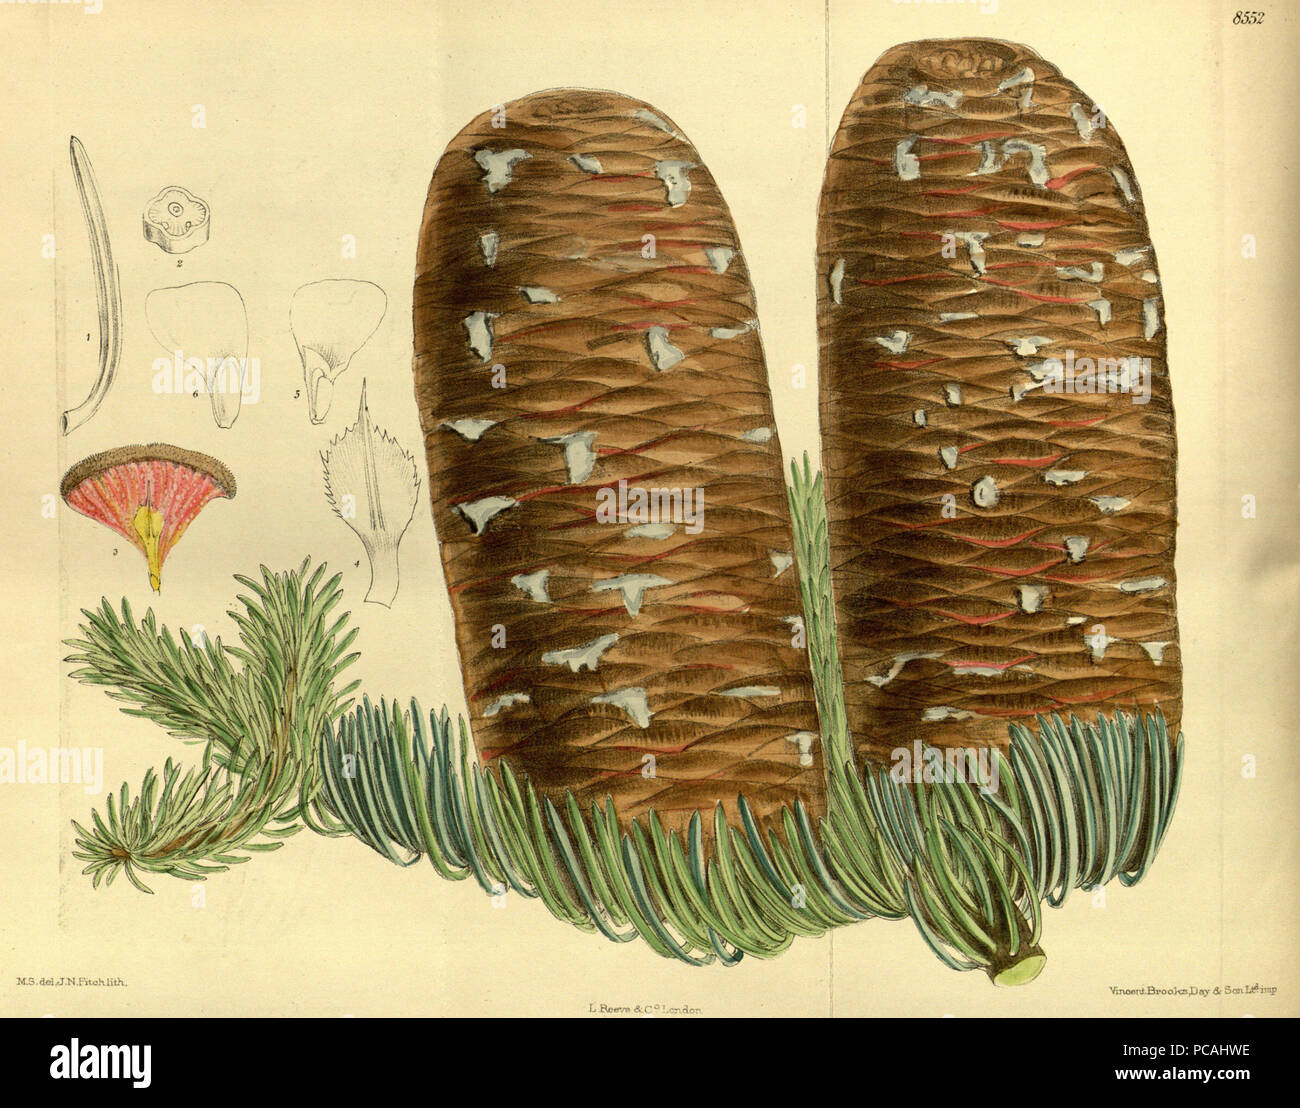 24 Abies magnifica 140-8552 - Stock Image